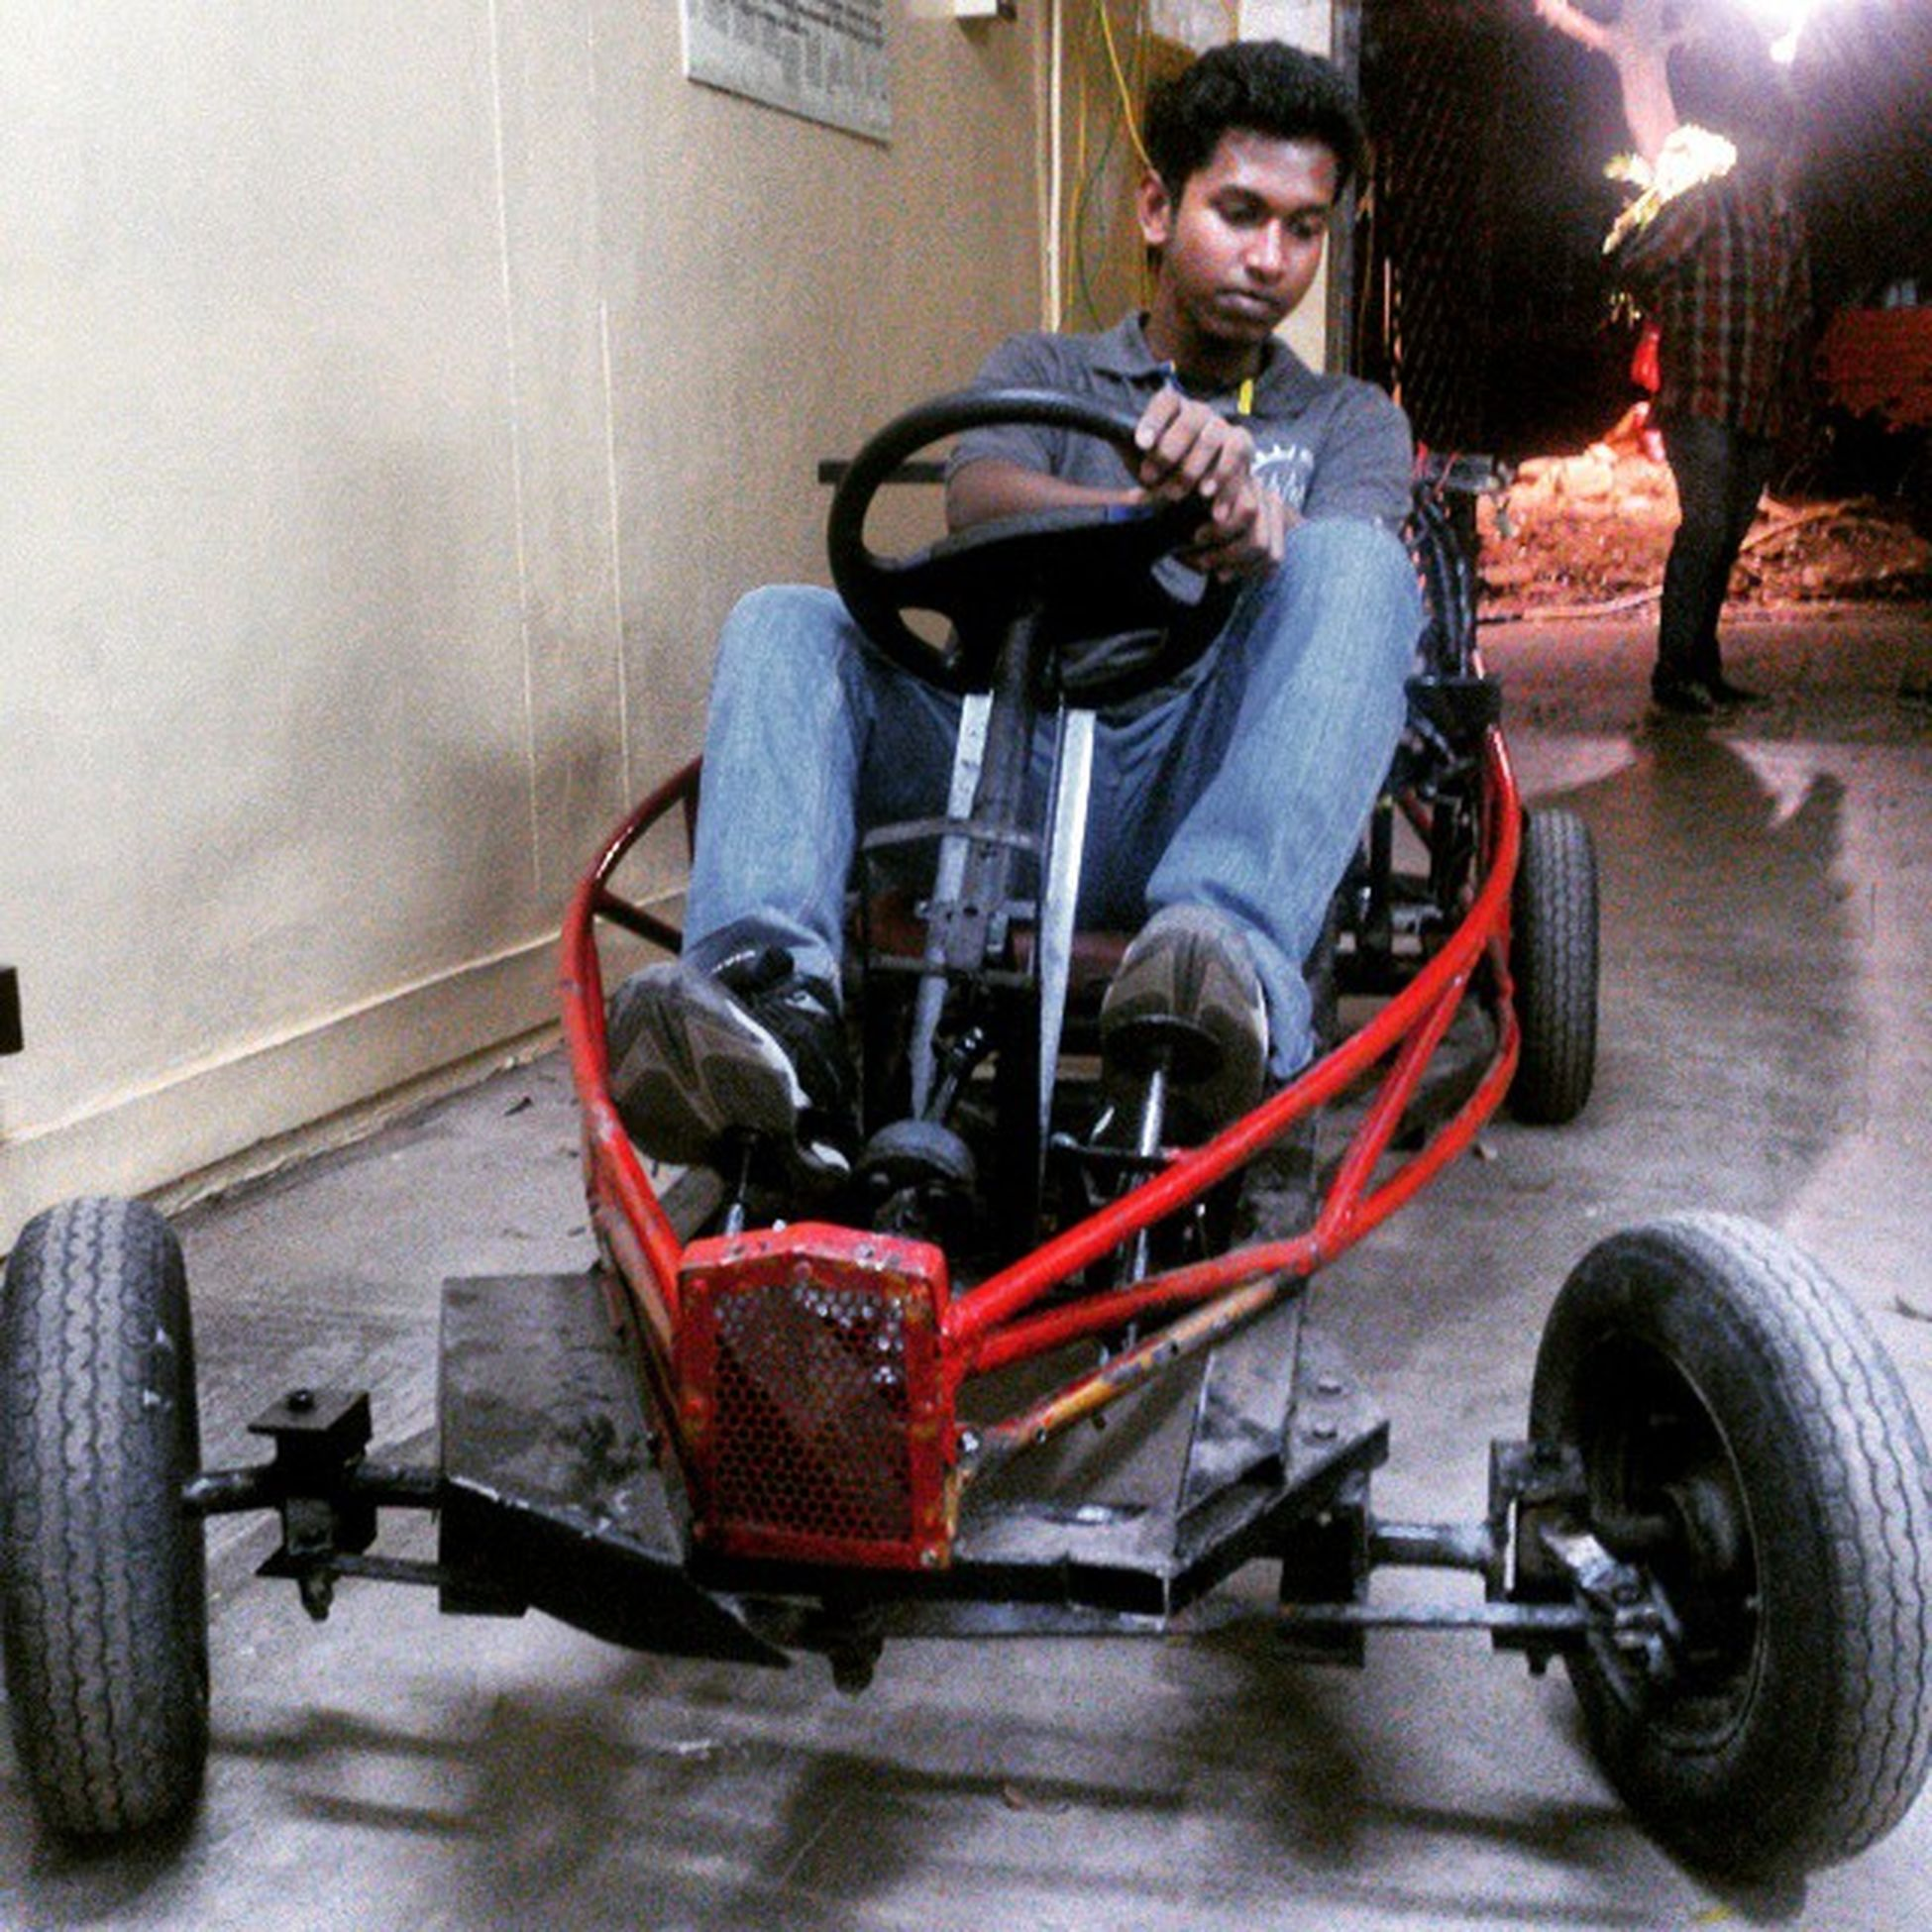 The final finished product! Mindkraft 2K15 Gocart Made Indegionesly Project Seniorsvsjuniors Crazy Fun Driving At Night Honda Activa Engine Maxed @60kmph Heavy Frame Aerospace Engineer Doing Mechanical Project